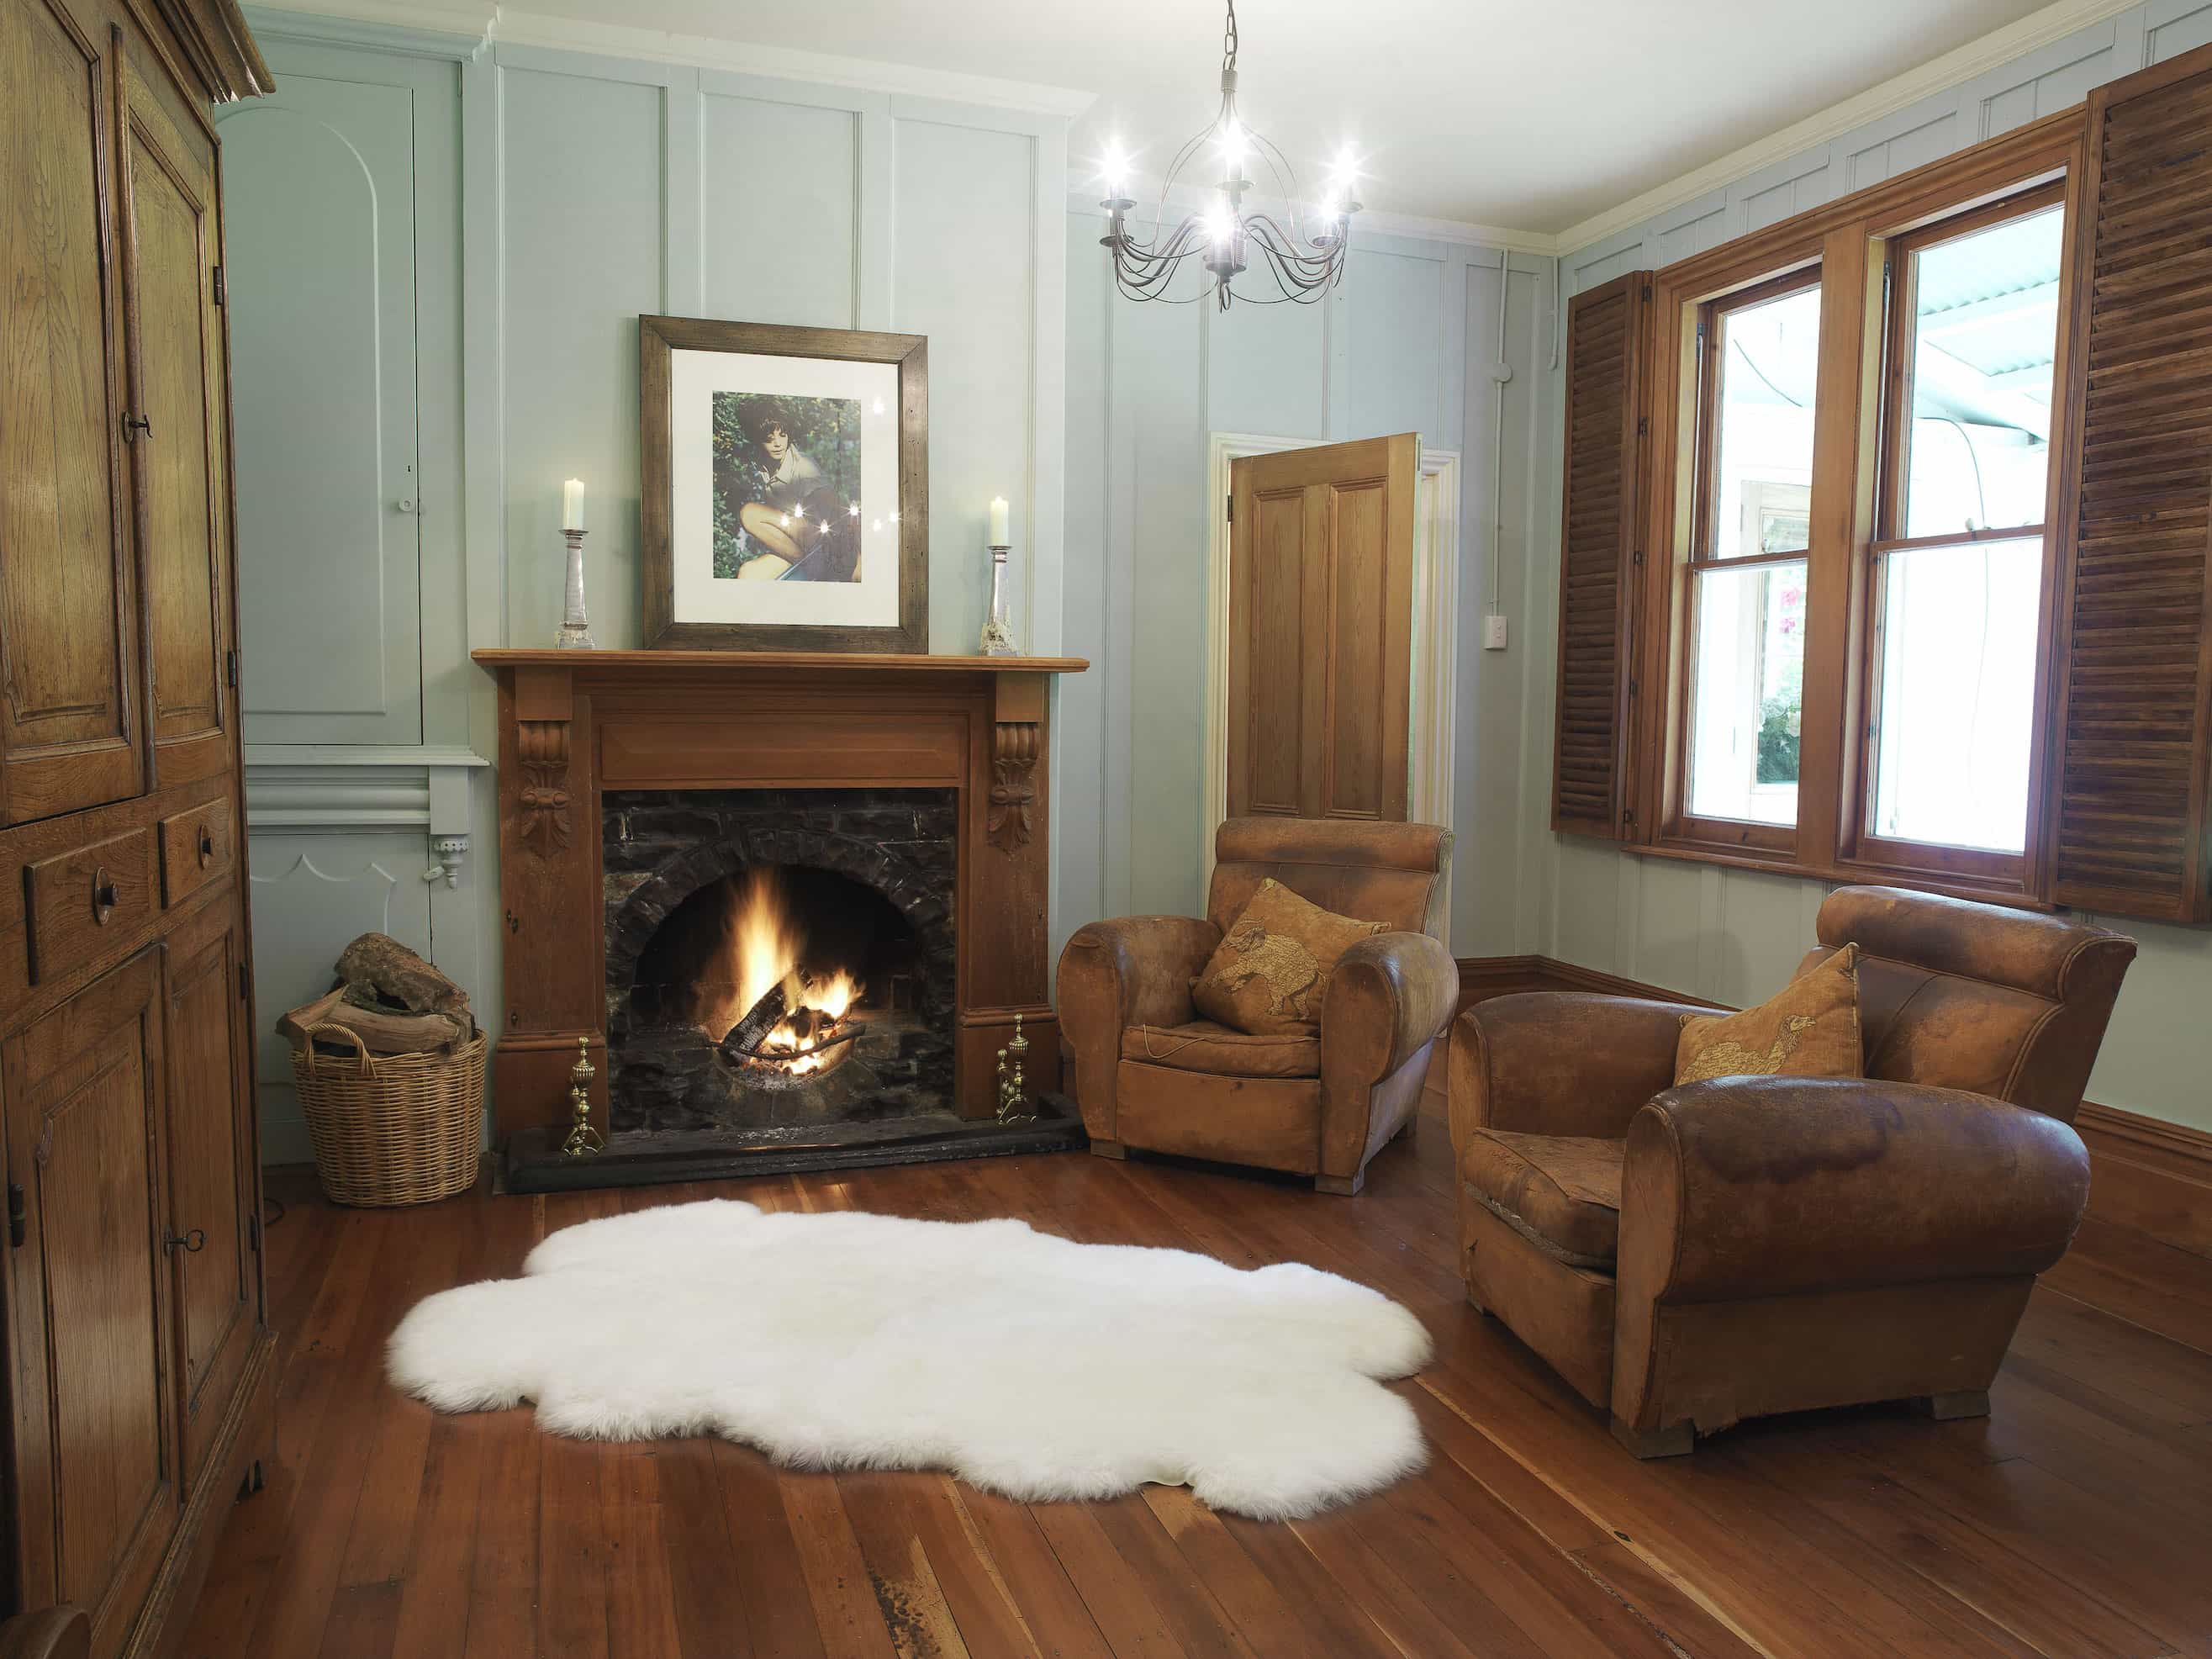 Classic Living Room With Wood Fireplace And Quarto Ivory Longwool Sheepskin Rug (Image 2 of 15)